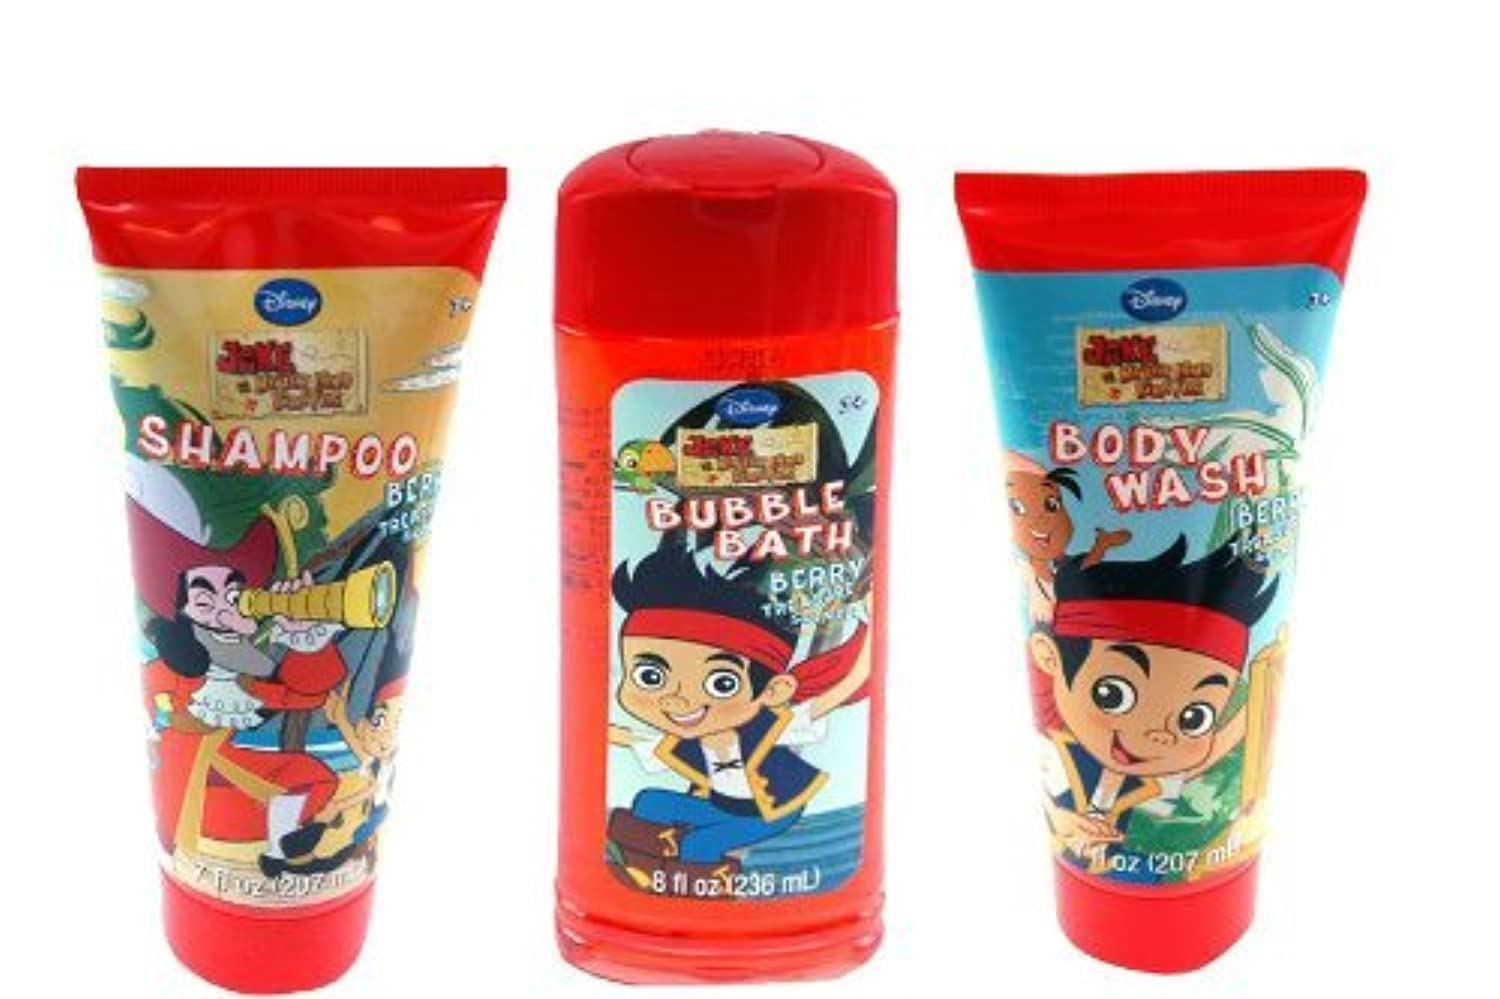 Jake and the Neverland Pirates Bath Gift Set - Bubble Bath, Body Wash, Shampoo by United Pacific [並行輸入品]